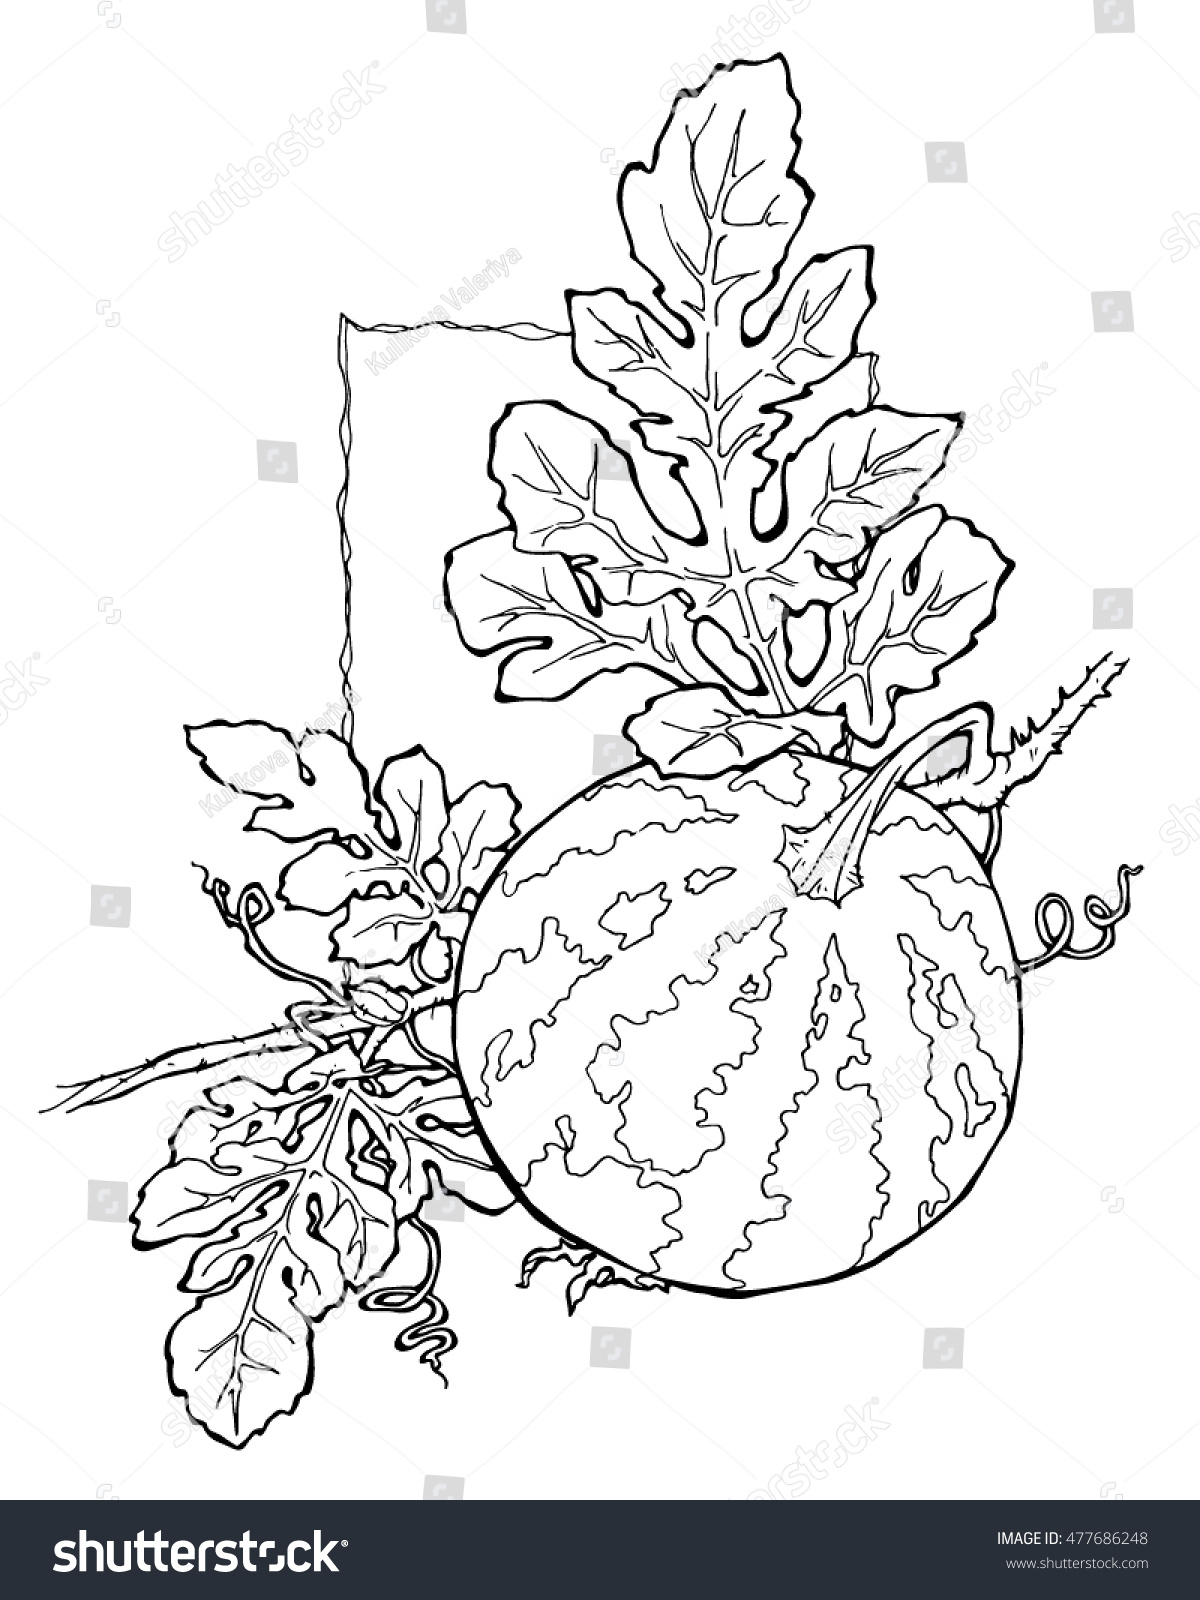 Watermelon Coloring Page Stock Vector Royalty Free 477686248